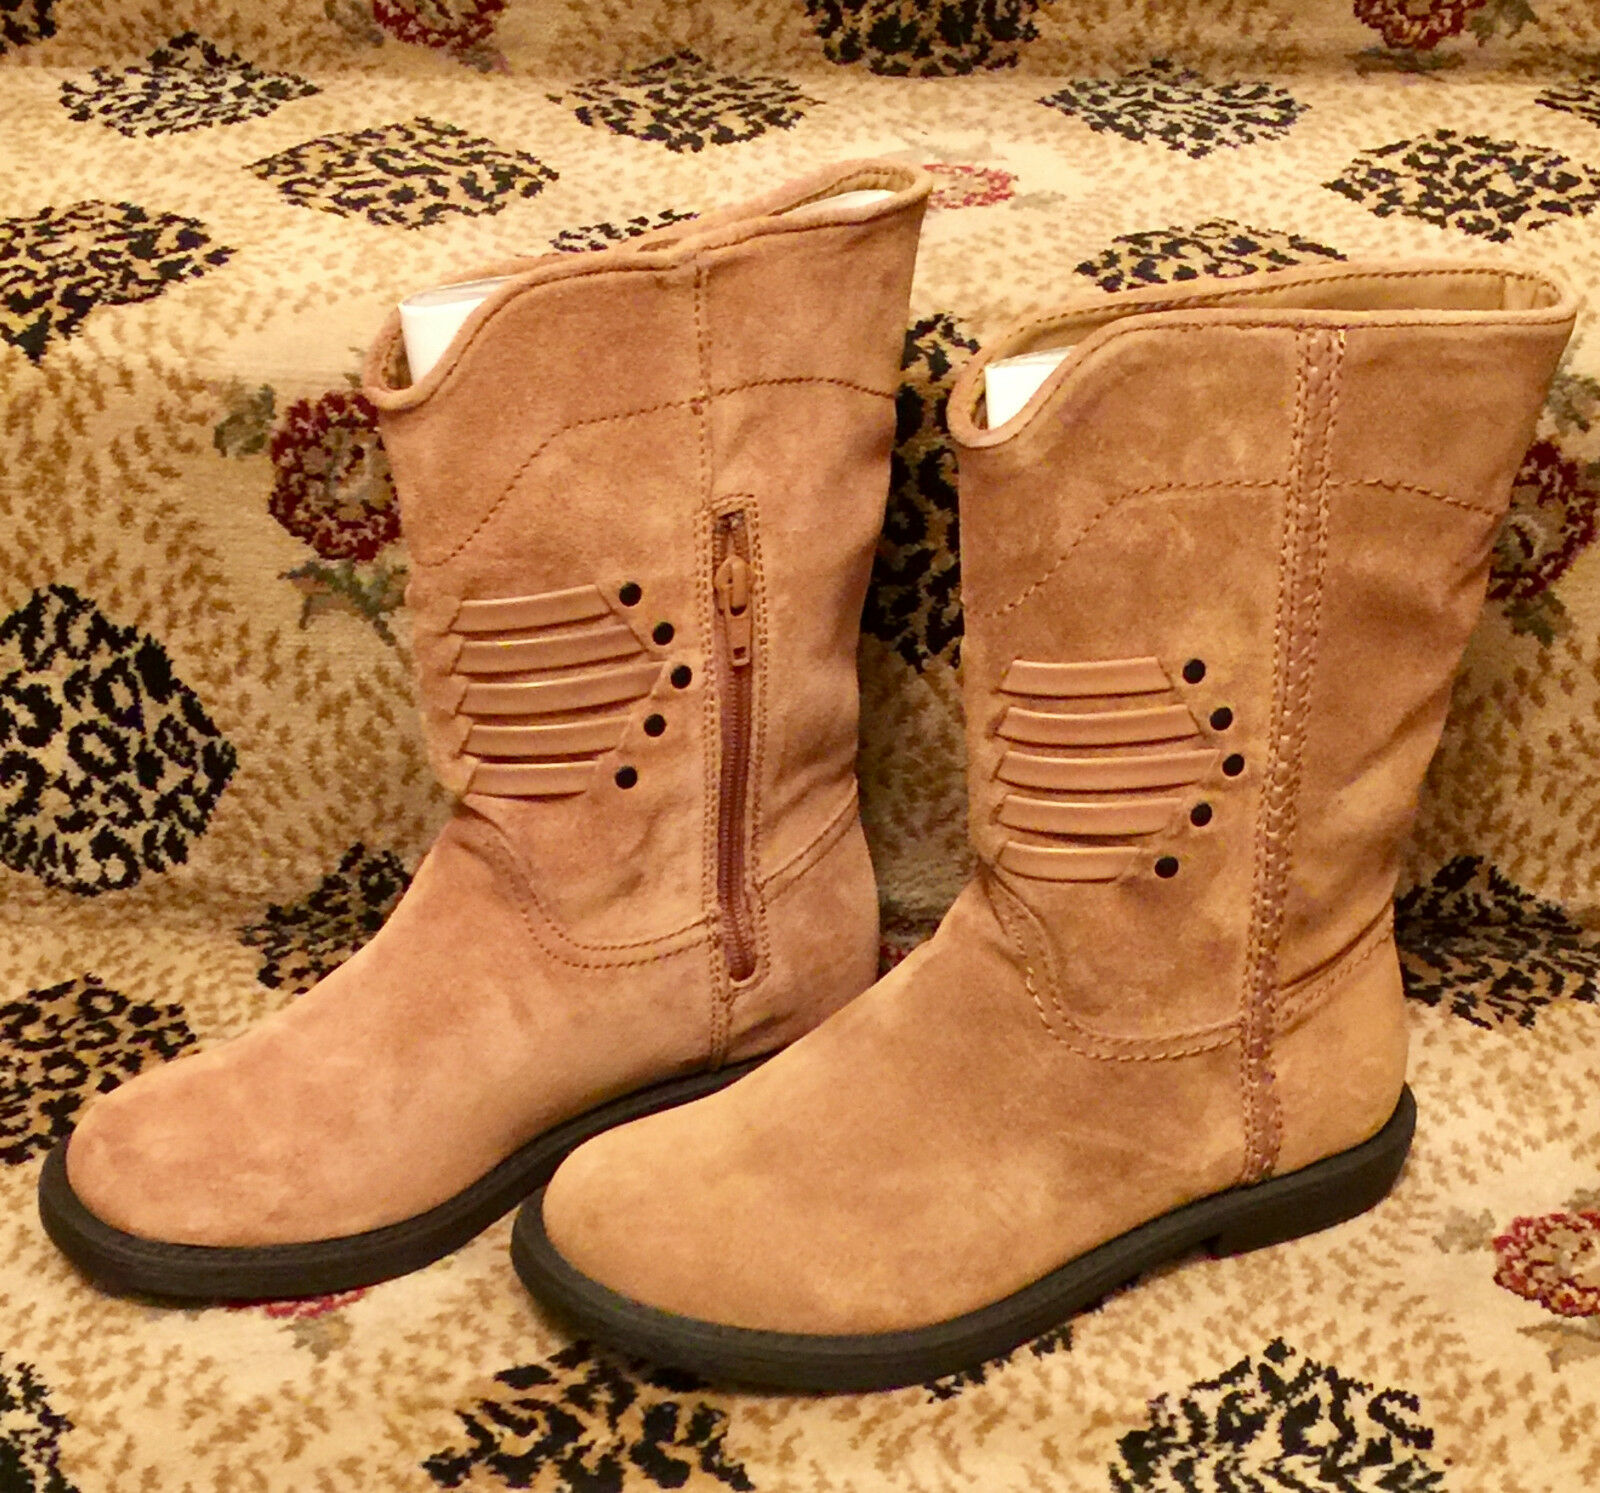 NEW 6 M CALVIN KLEIN KOURTNEY MOTORCYCLE SUEDE LEATHER MOTO RIDING BOOTS BOOTIE